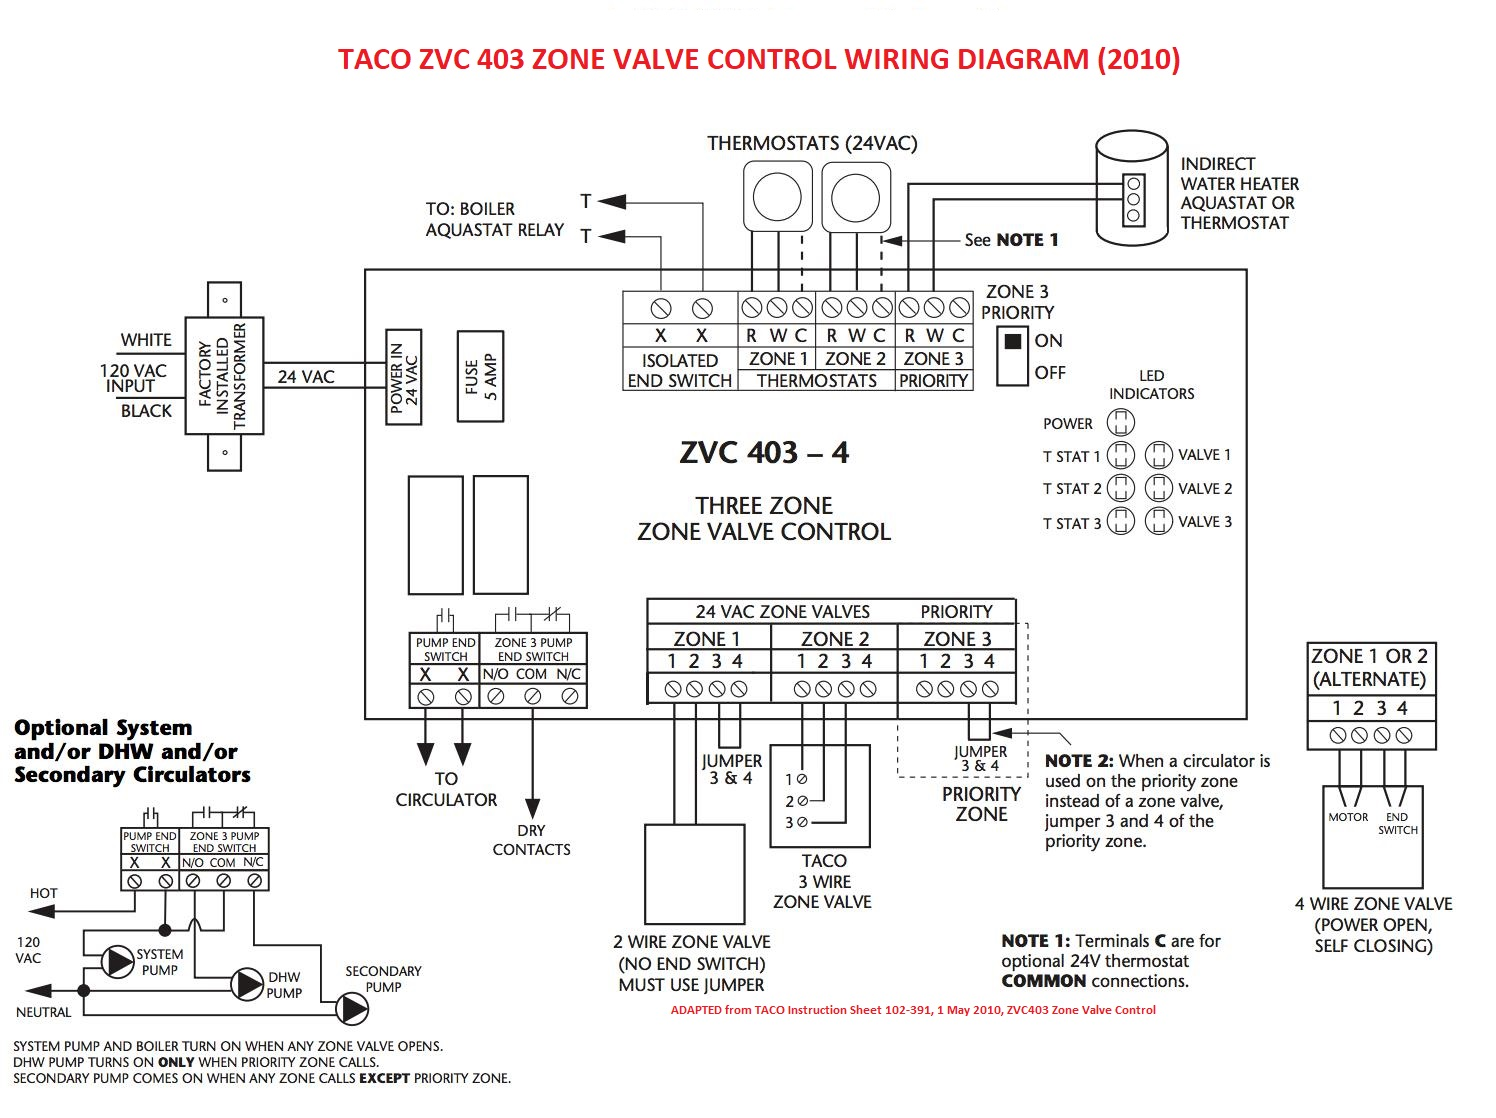 Honda 5013 Wiring Diagram - Wiring Diagram G11 on